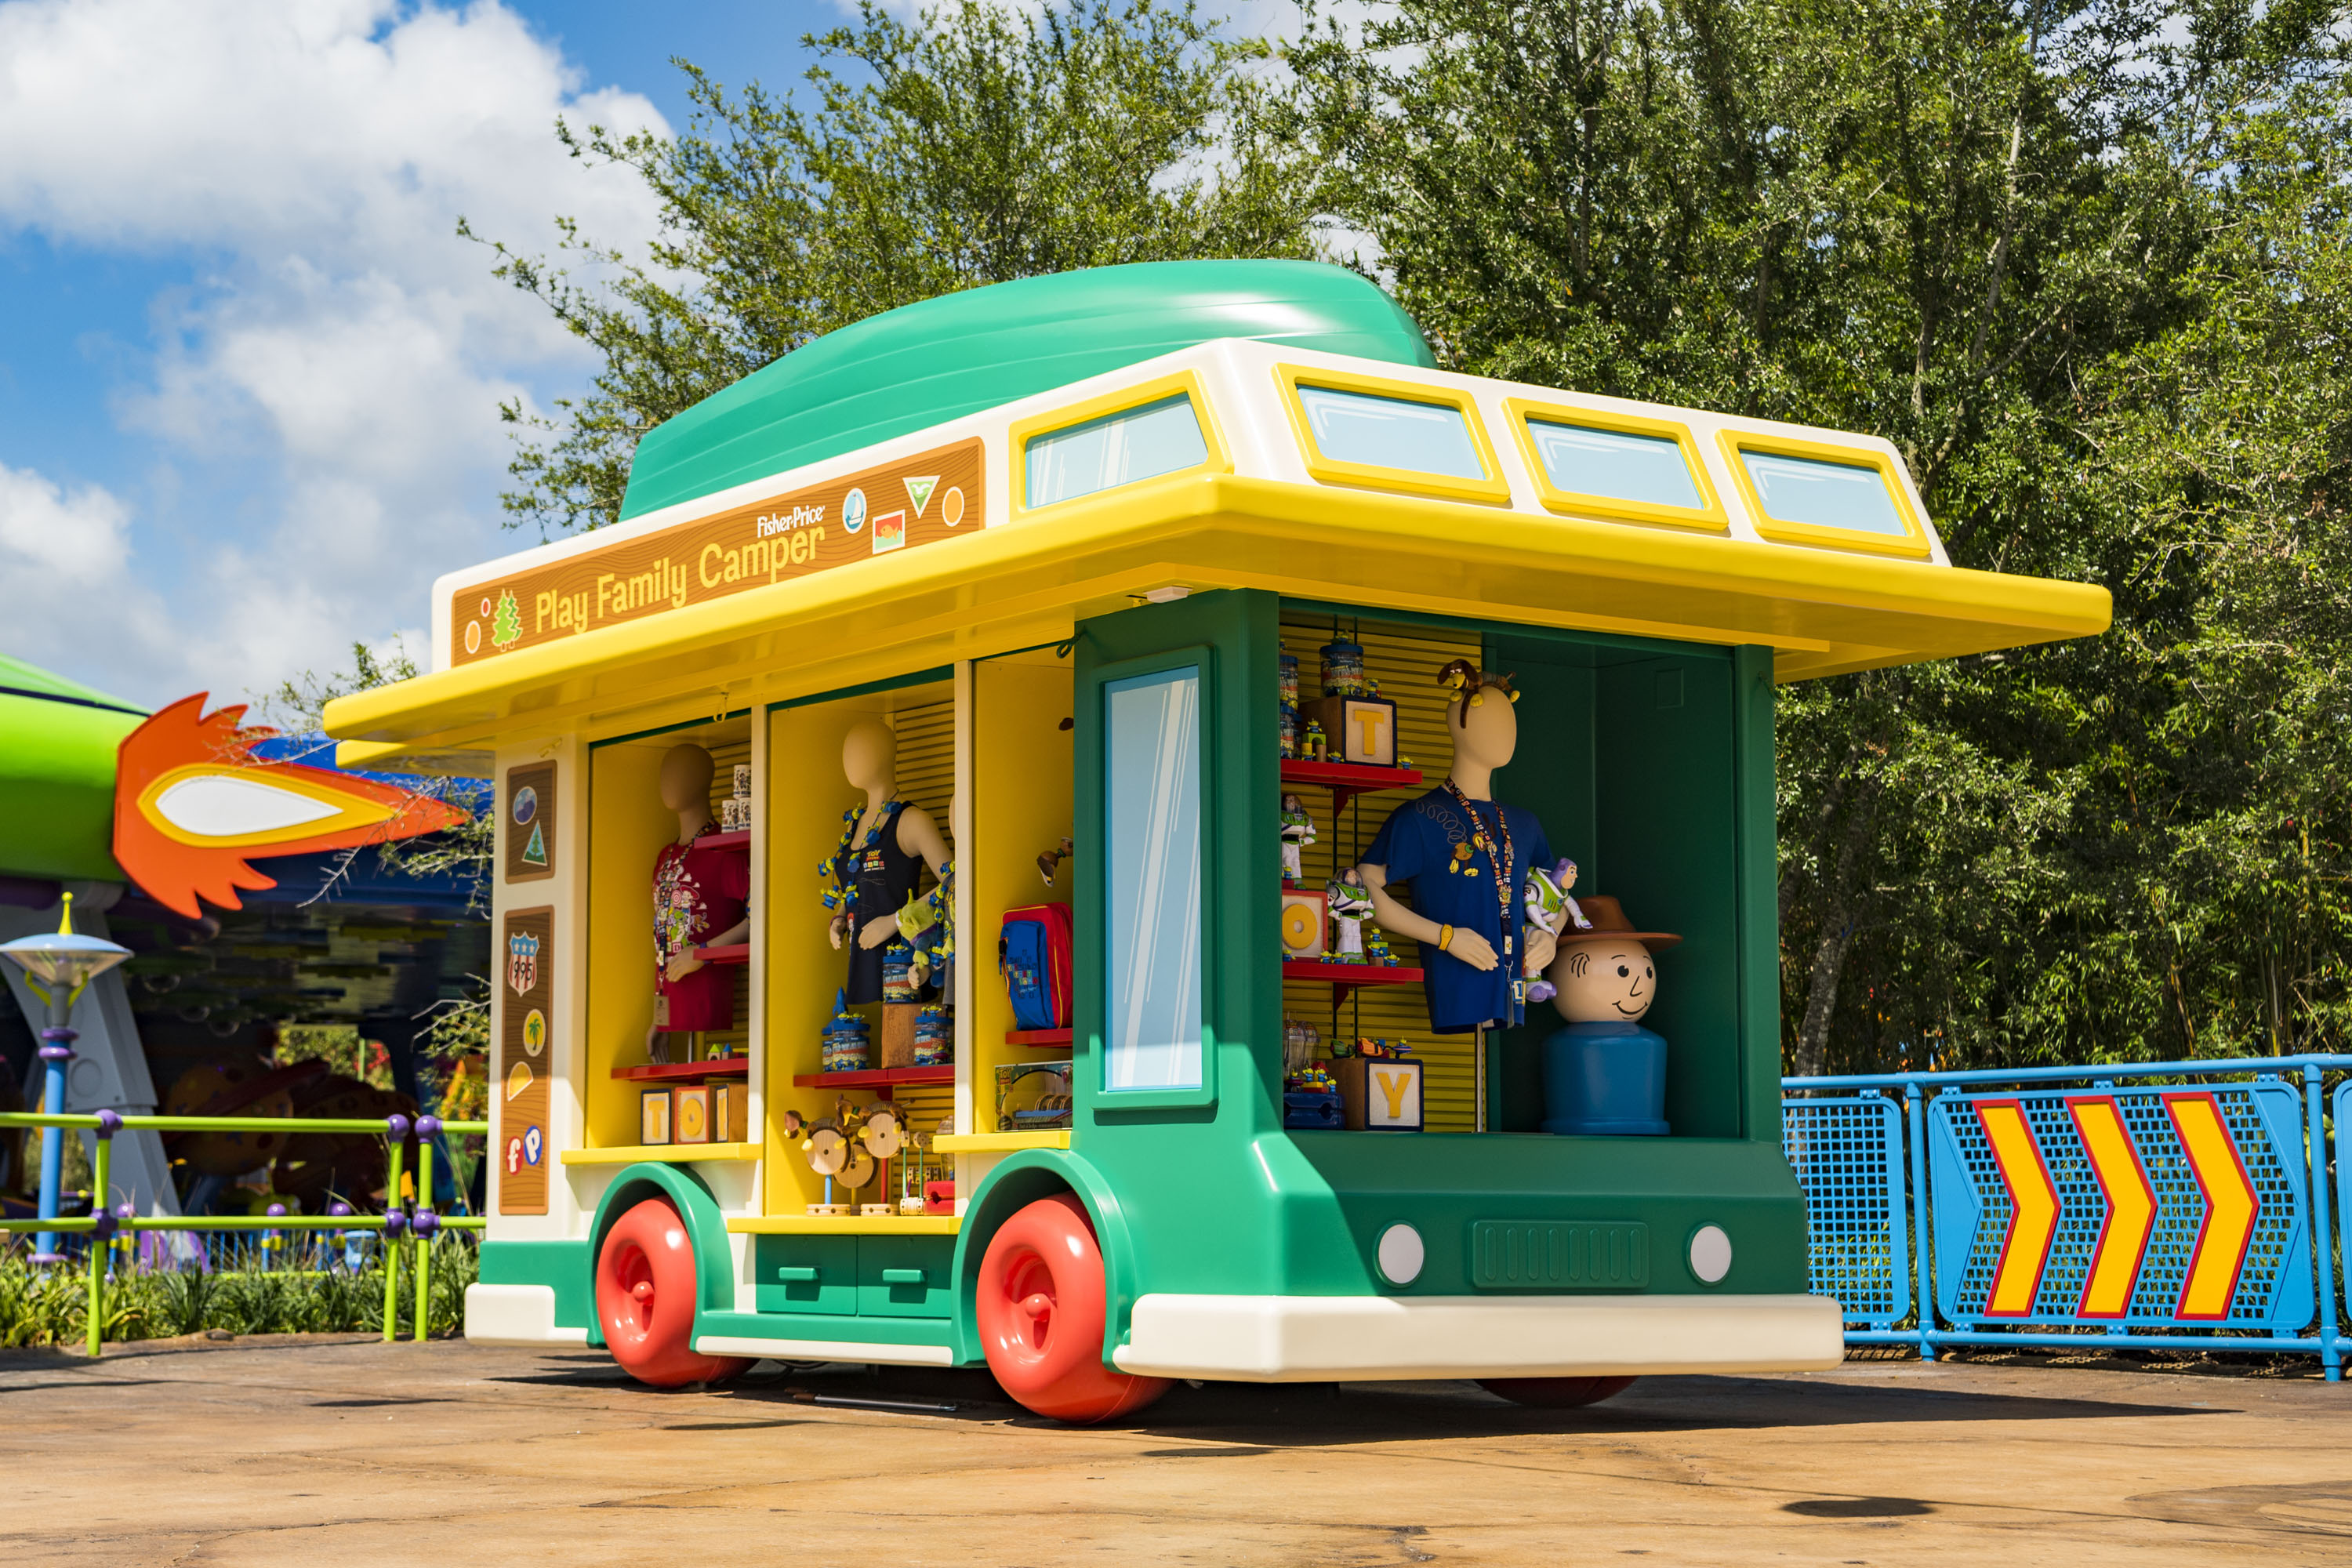 Merchandise kiosk at Toy Story Land